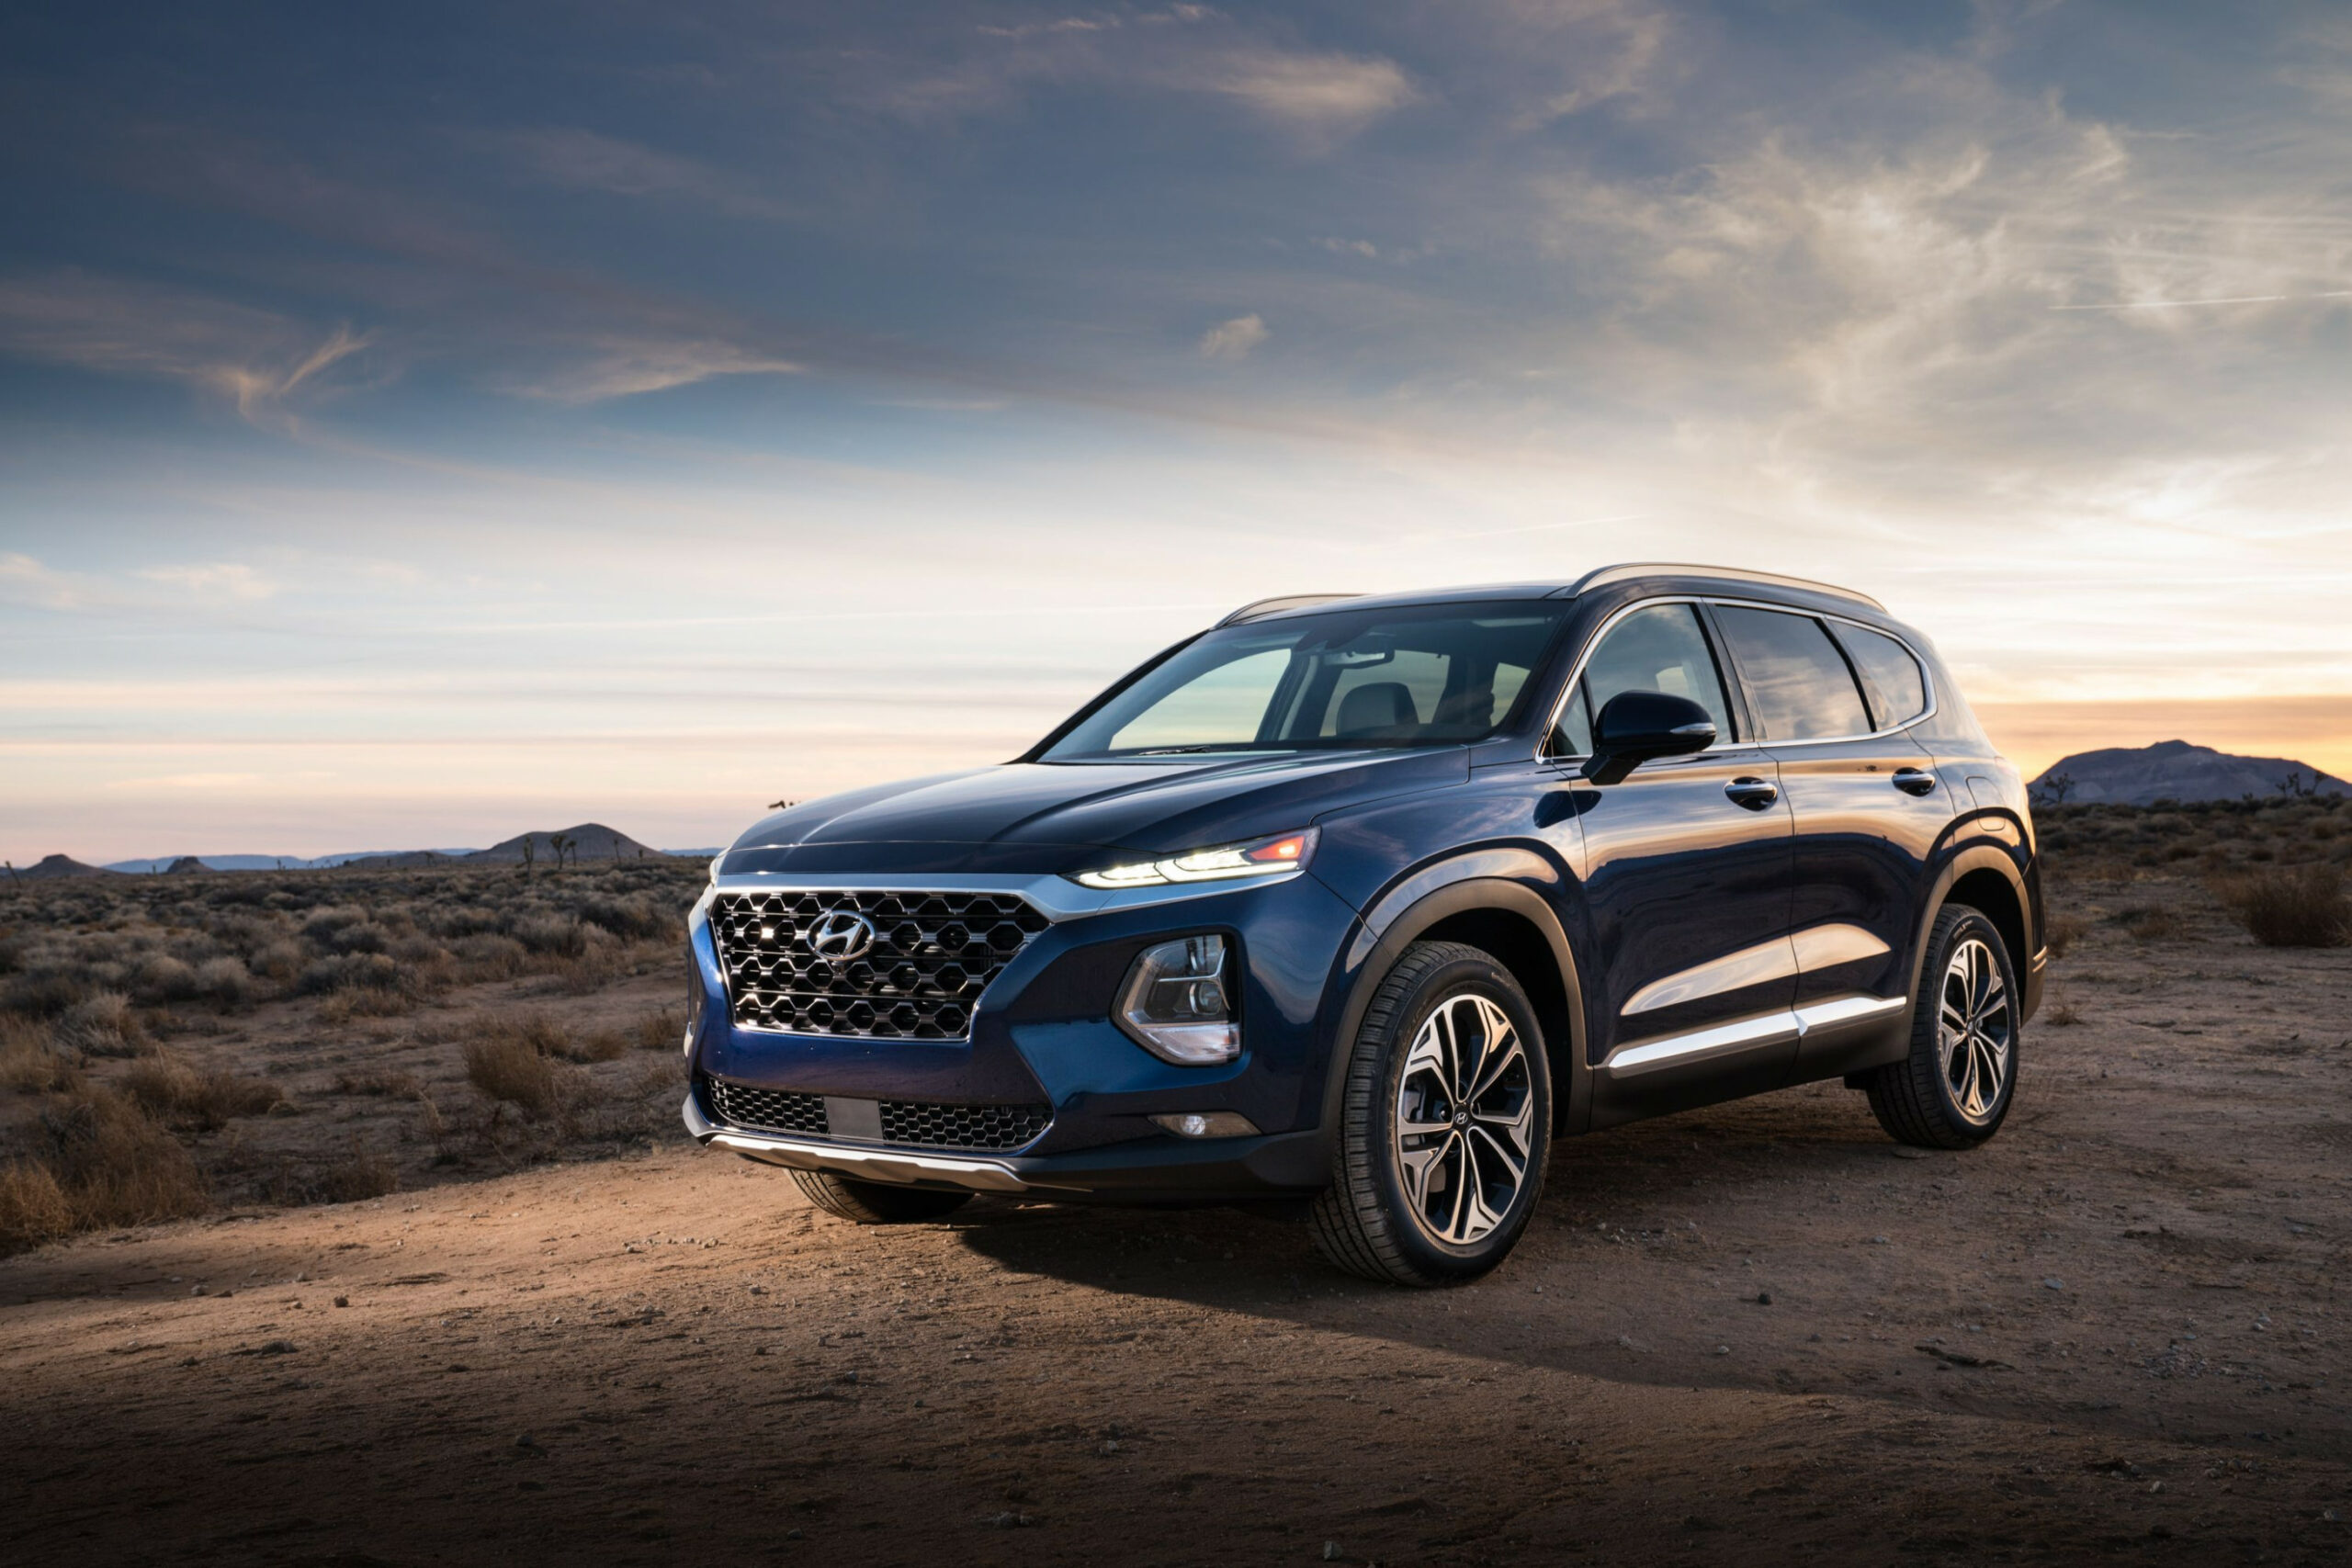 12 Hyundai Santa Fe Review, Pricing, and Specs